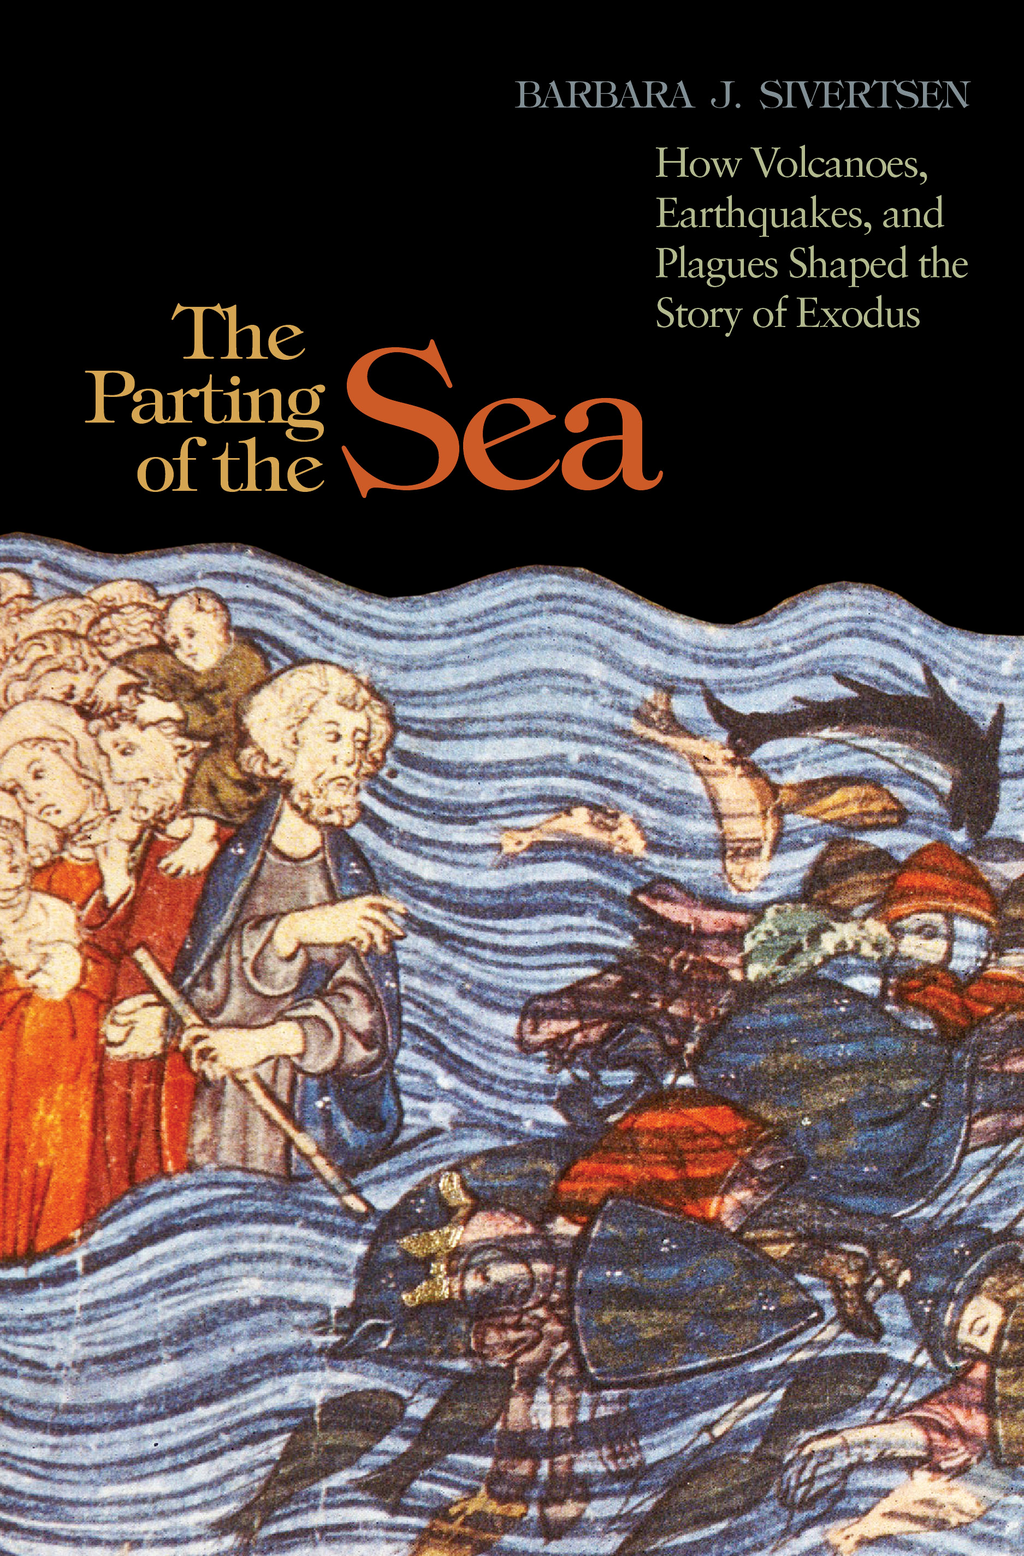 The Parting of the Sea By: Barbara J. Sivertsen